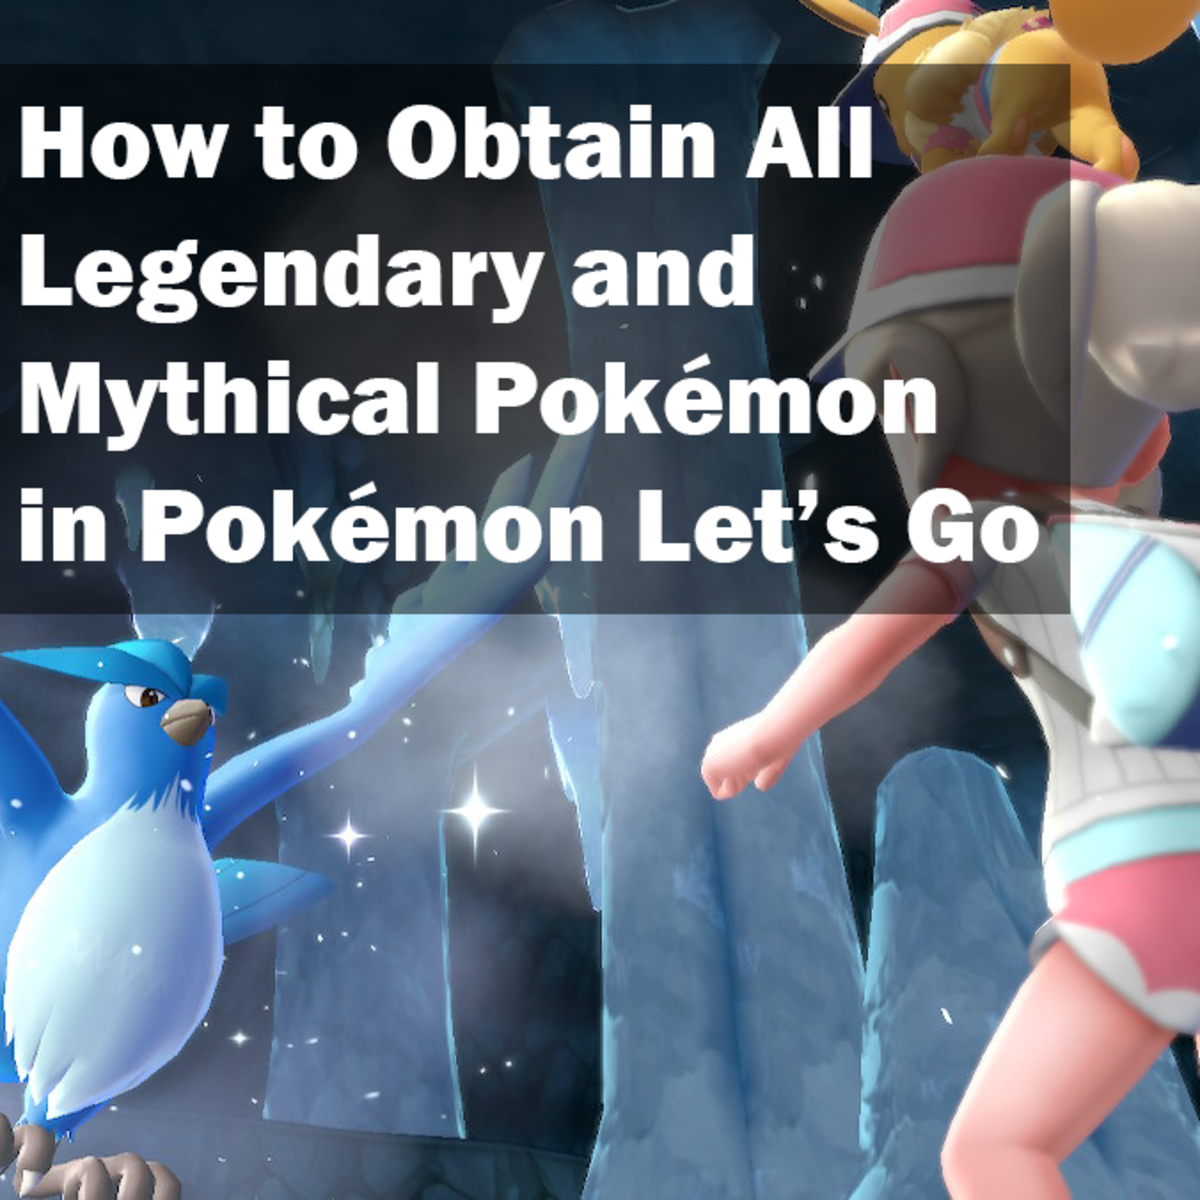 Legendary and Mythical Pokémon Guide for Pokémon Let's Go Pikachu and Let's Go Eevee